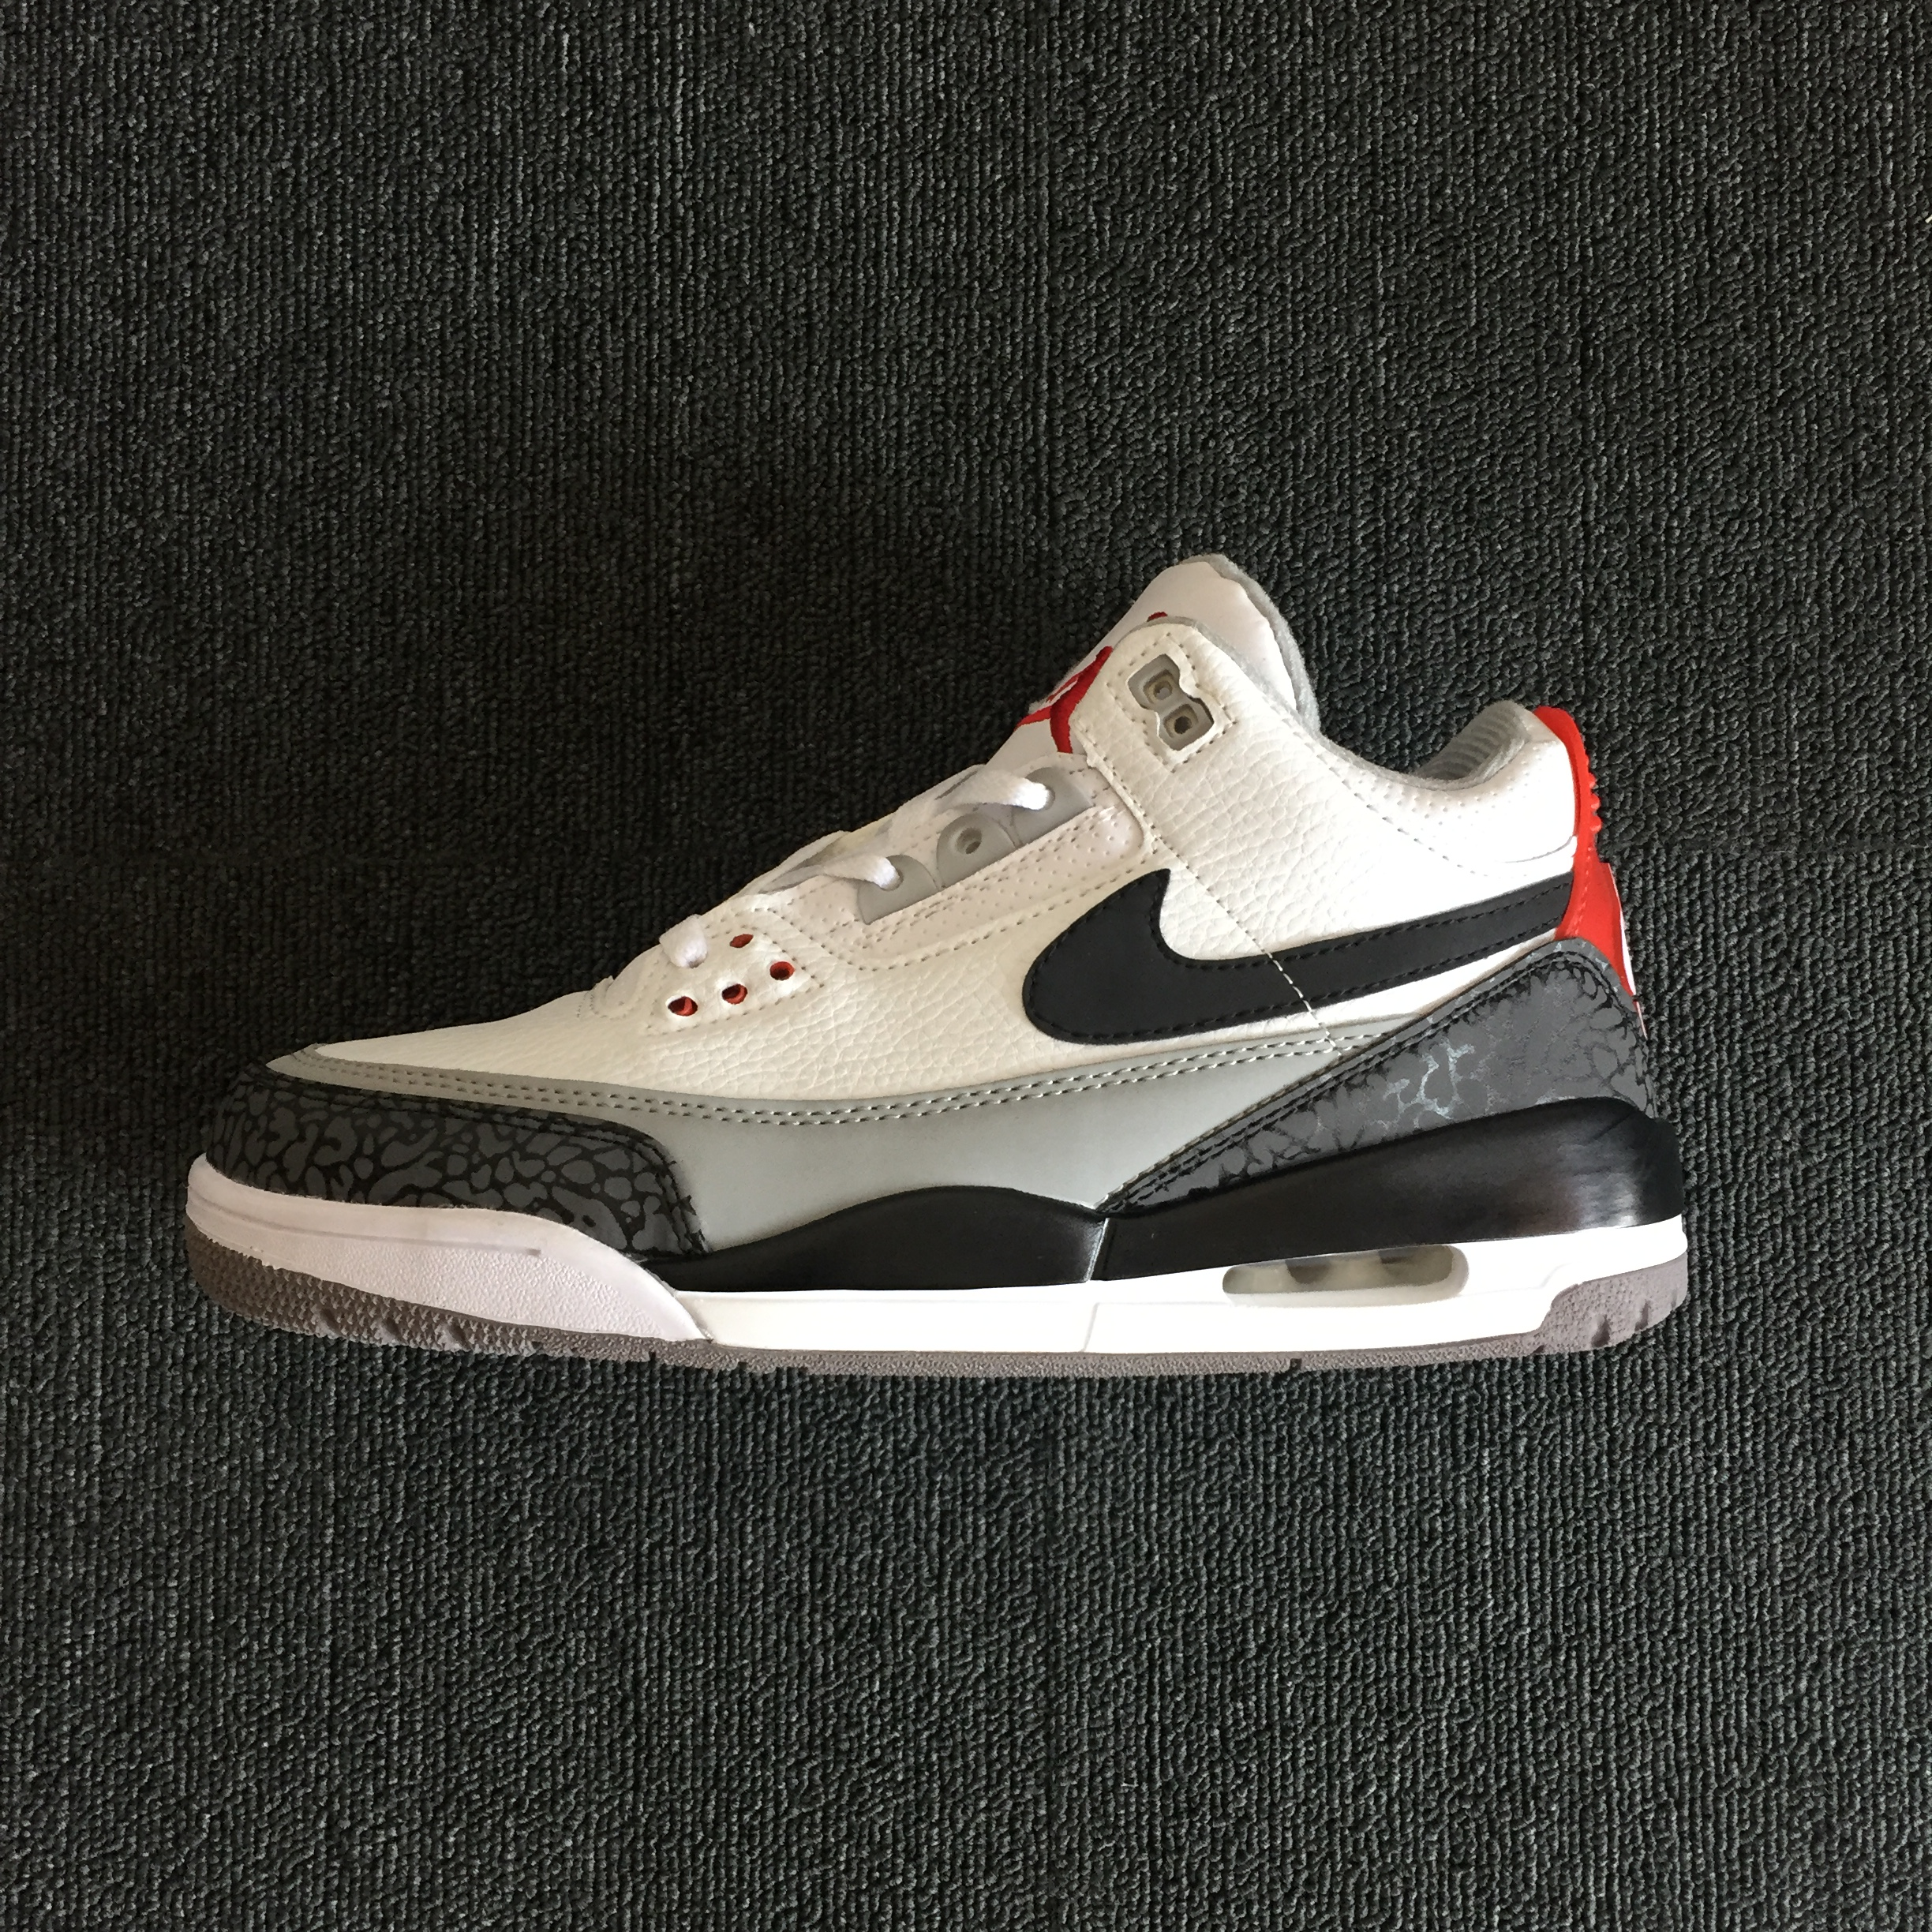 2018 Jordan 3 Retro Tinker AJ3 White Black Grey